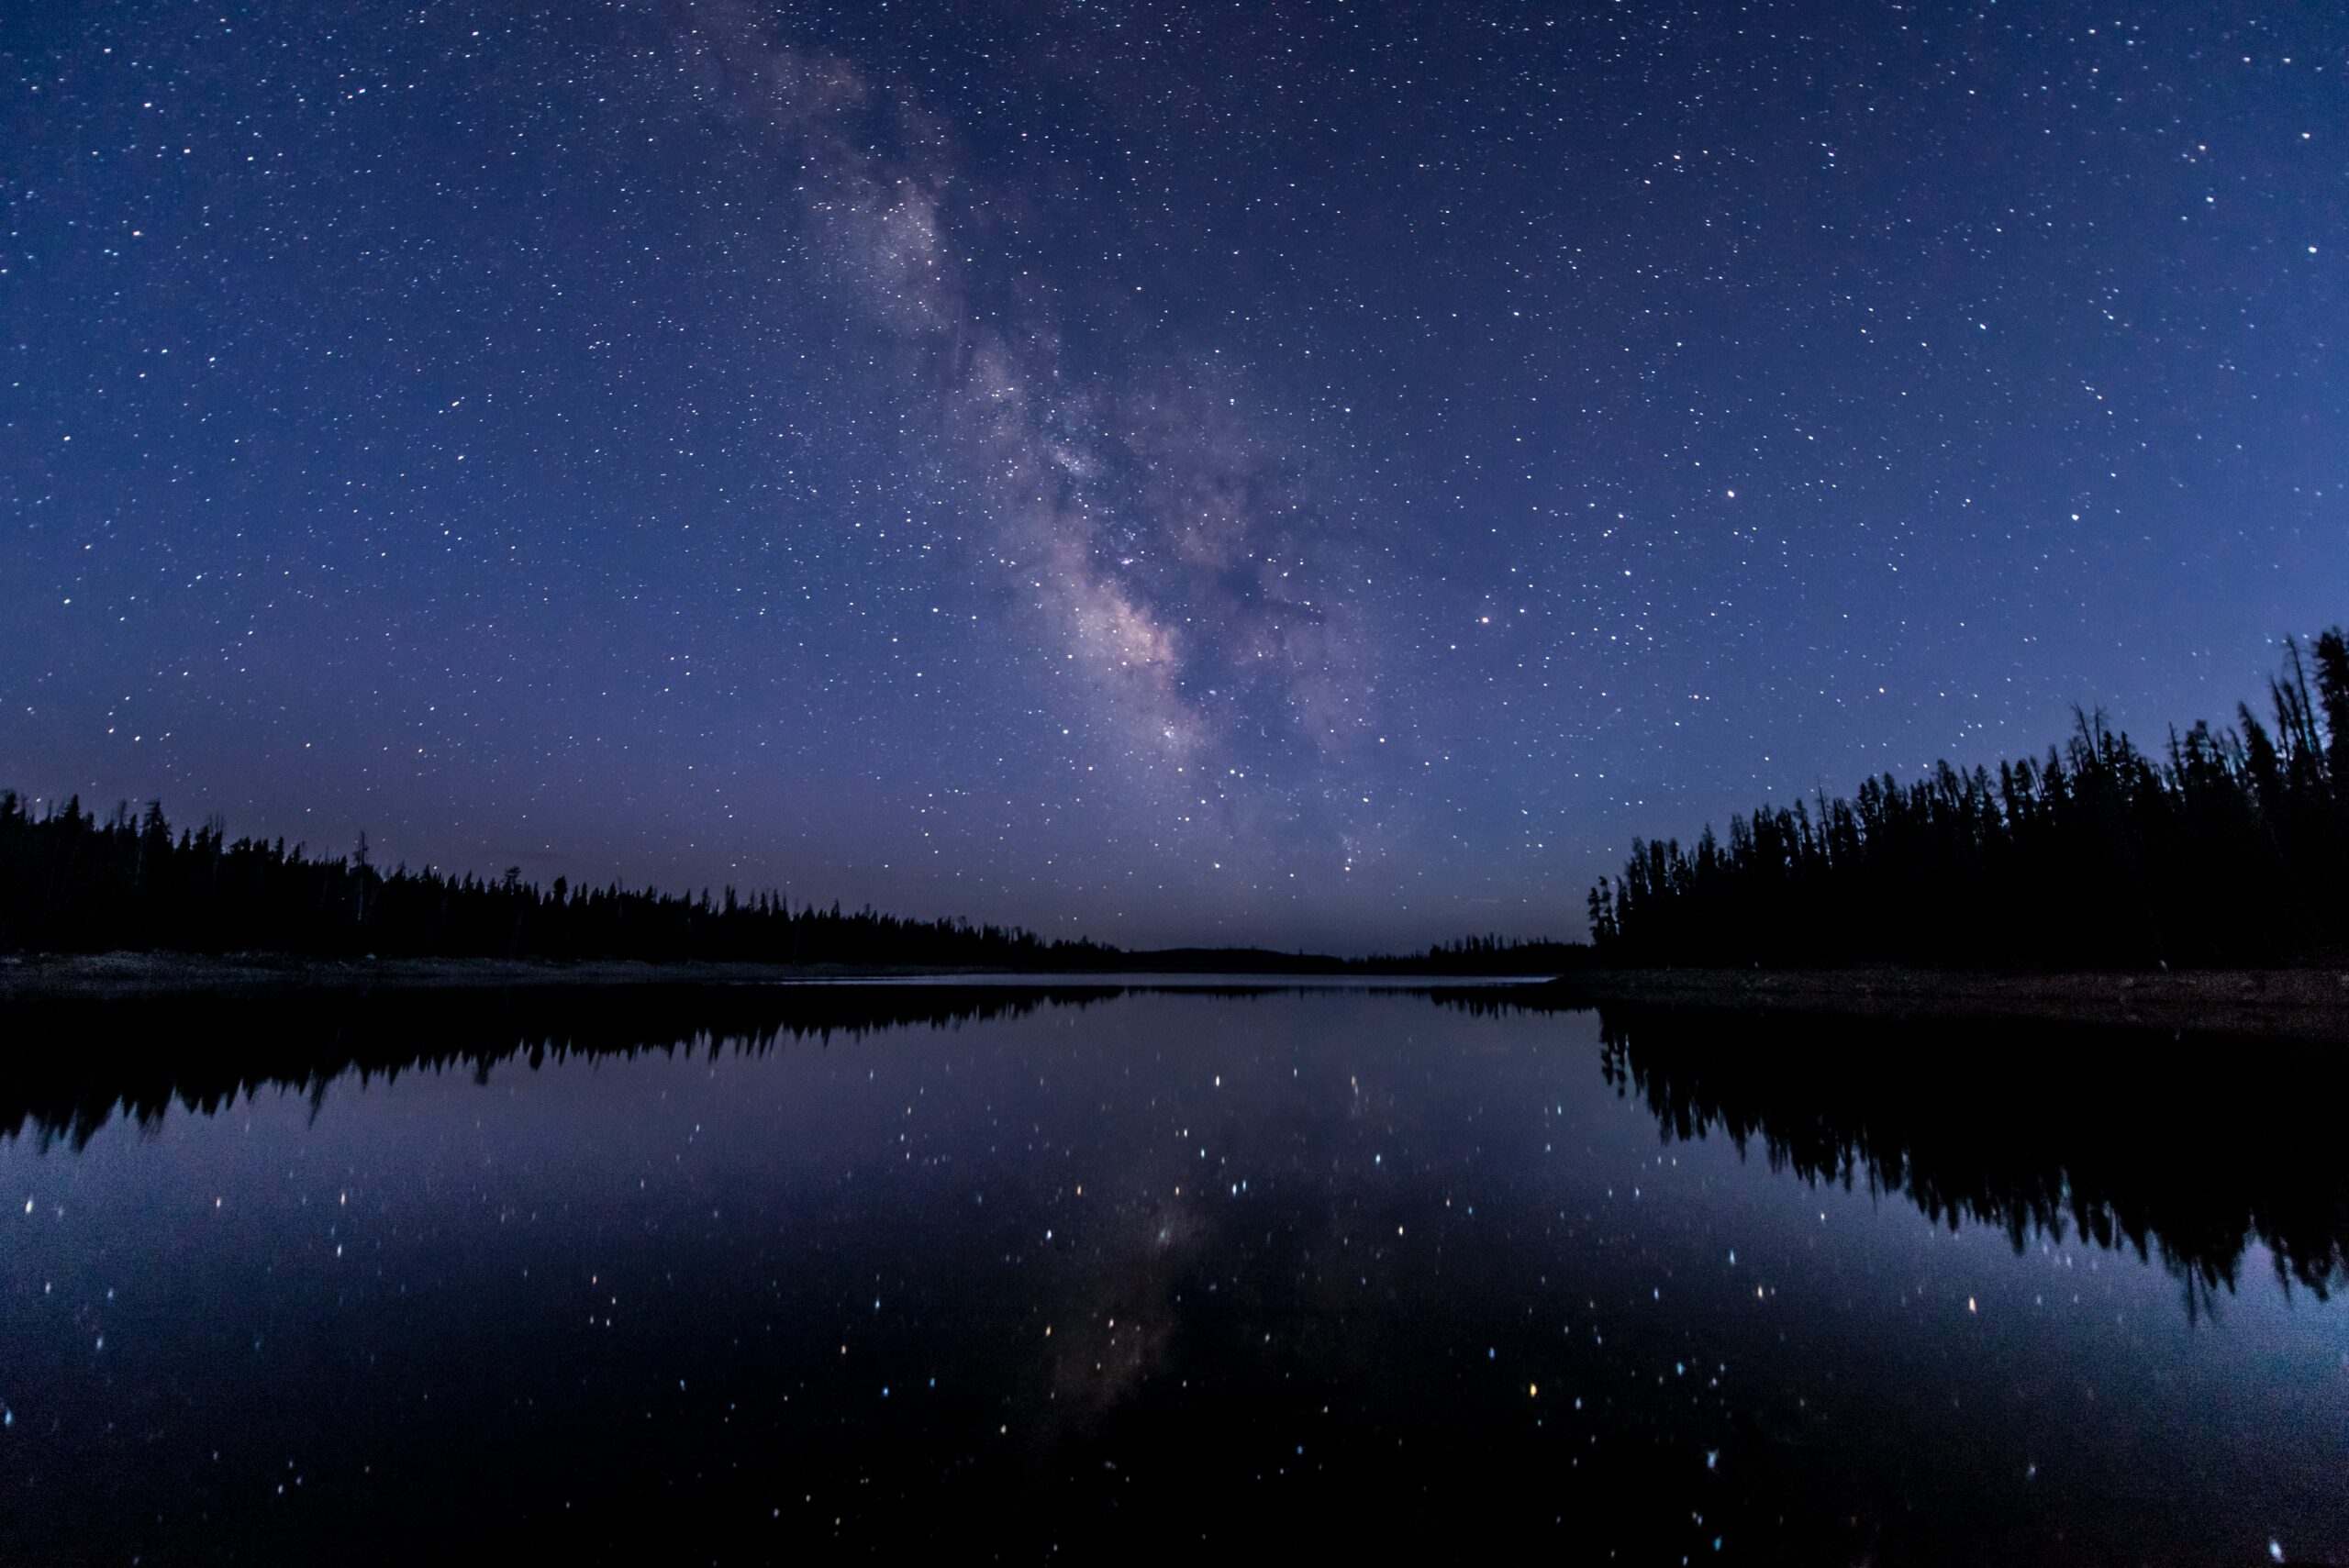 A night sky above a river and forest